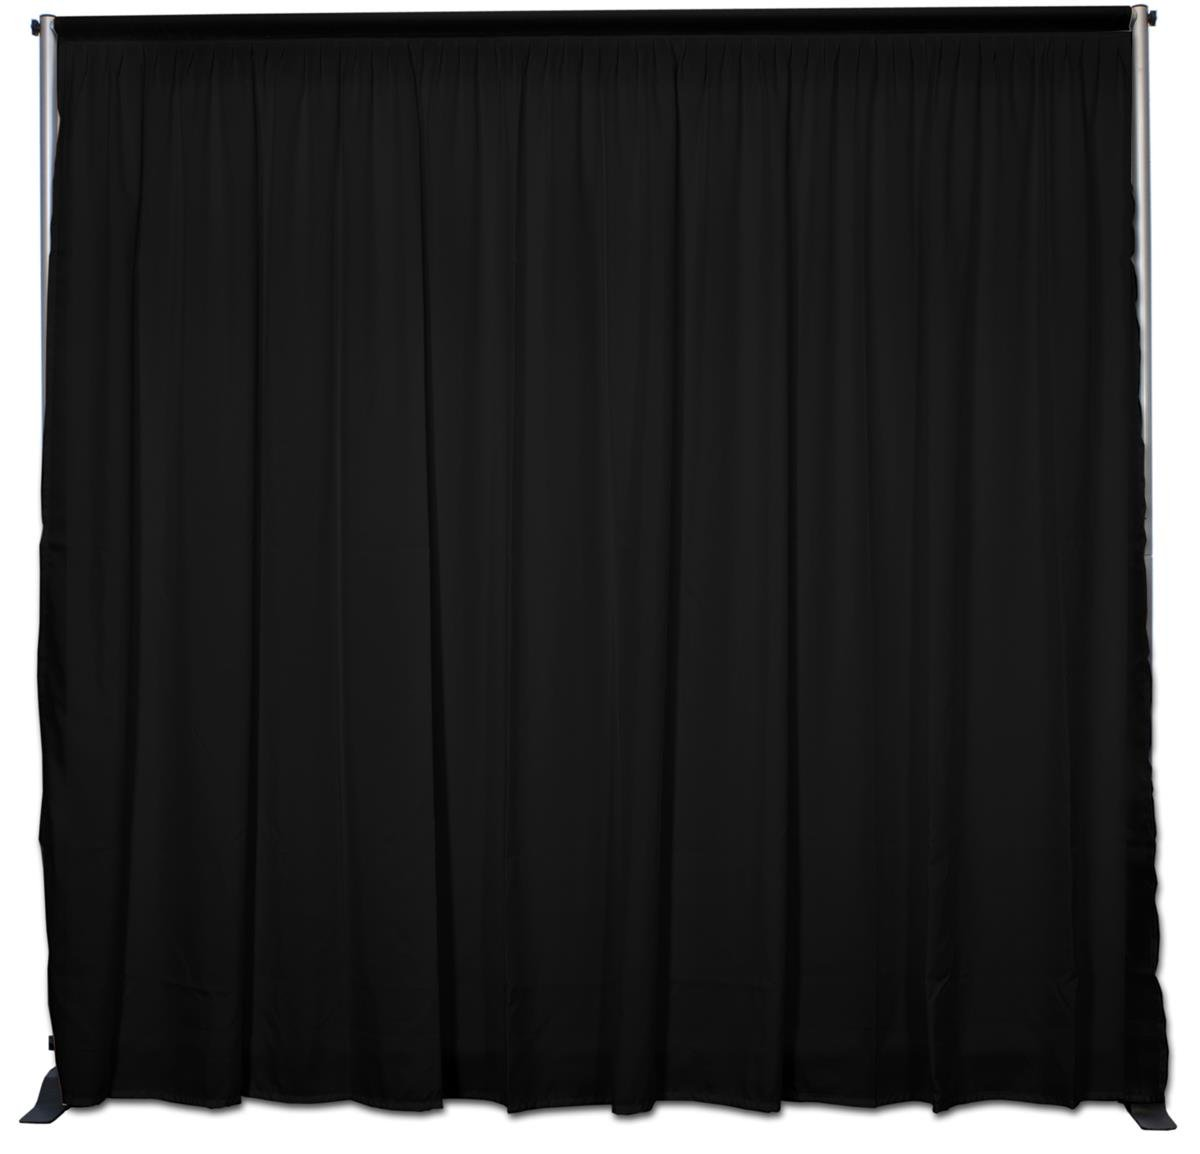 event suppliers pipe cheap com and backdrop drapes alibaba showroom drape at kits manufacturers